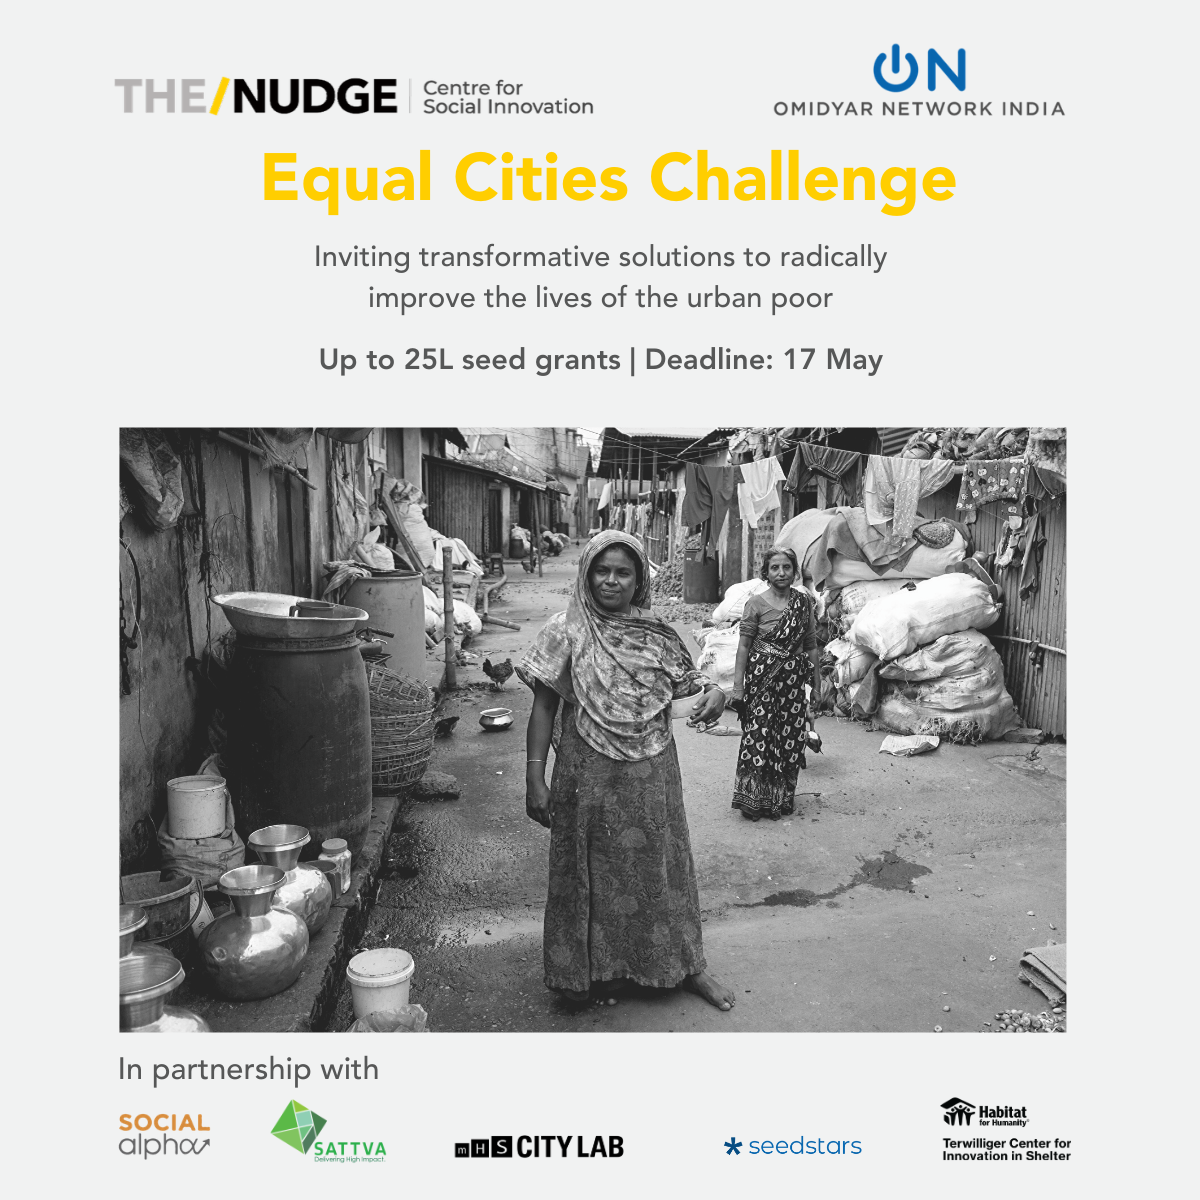 Inviting ideas under Equal Cities Challenge